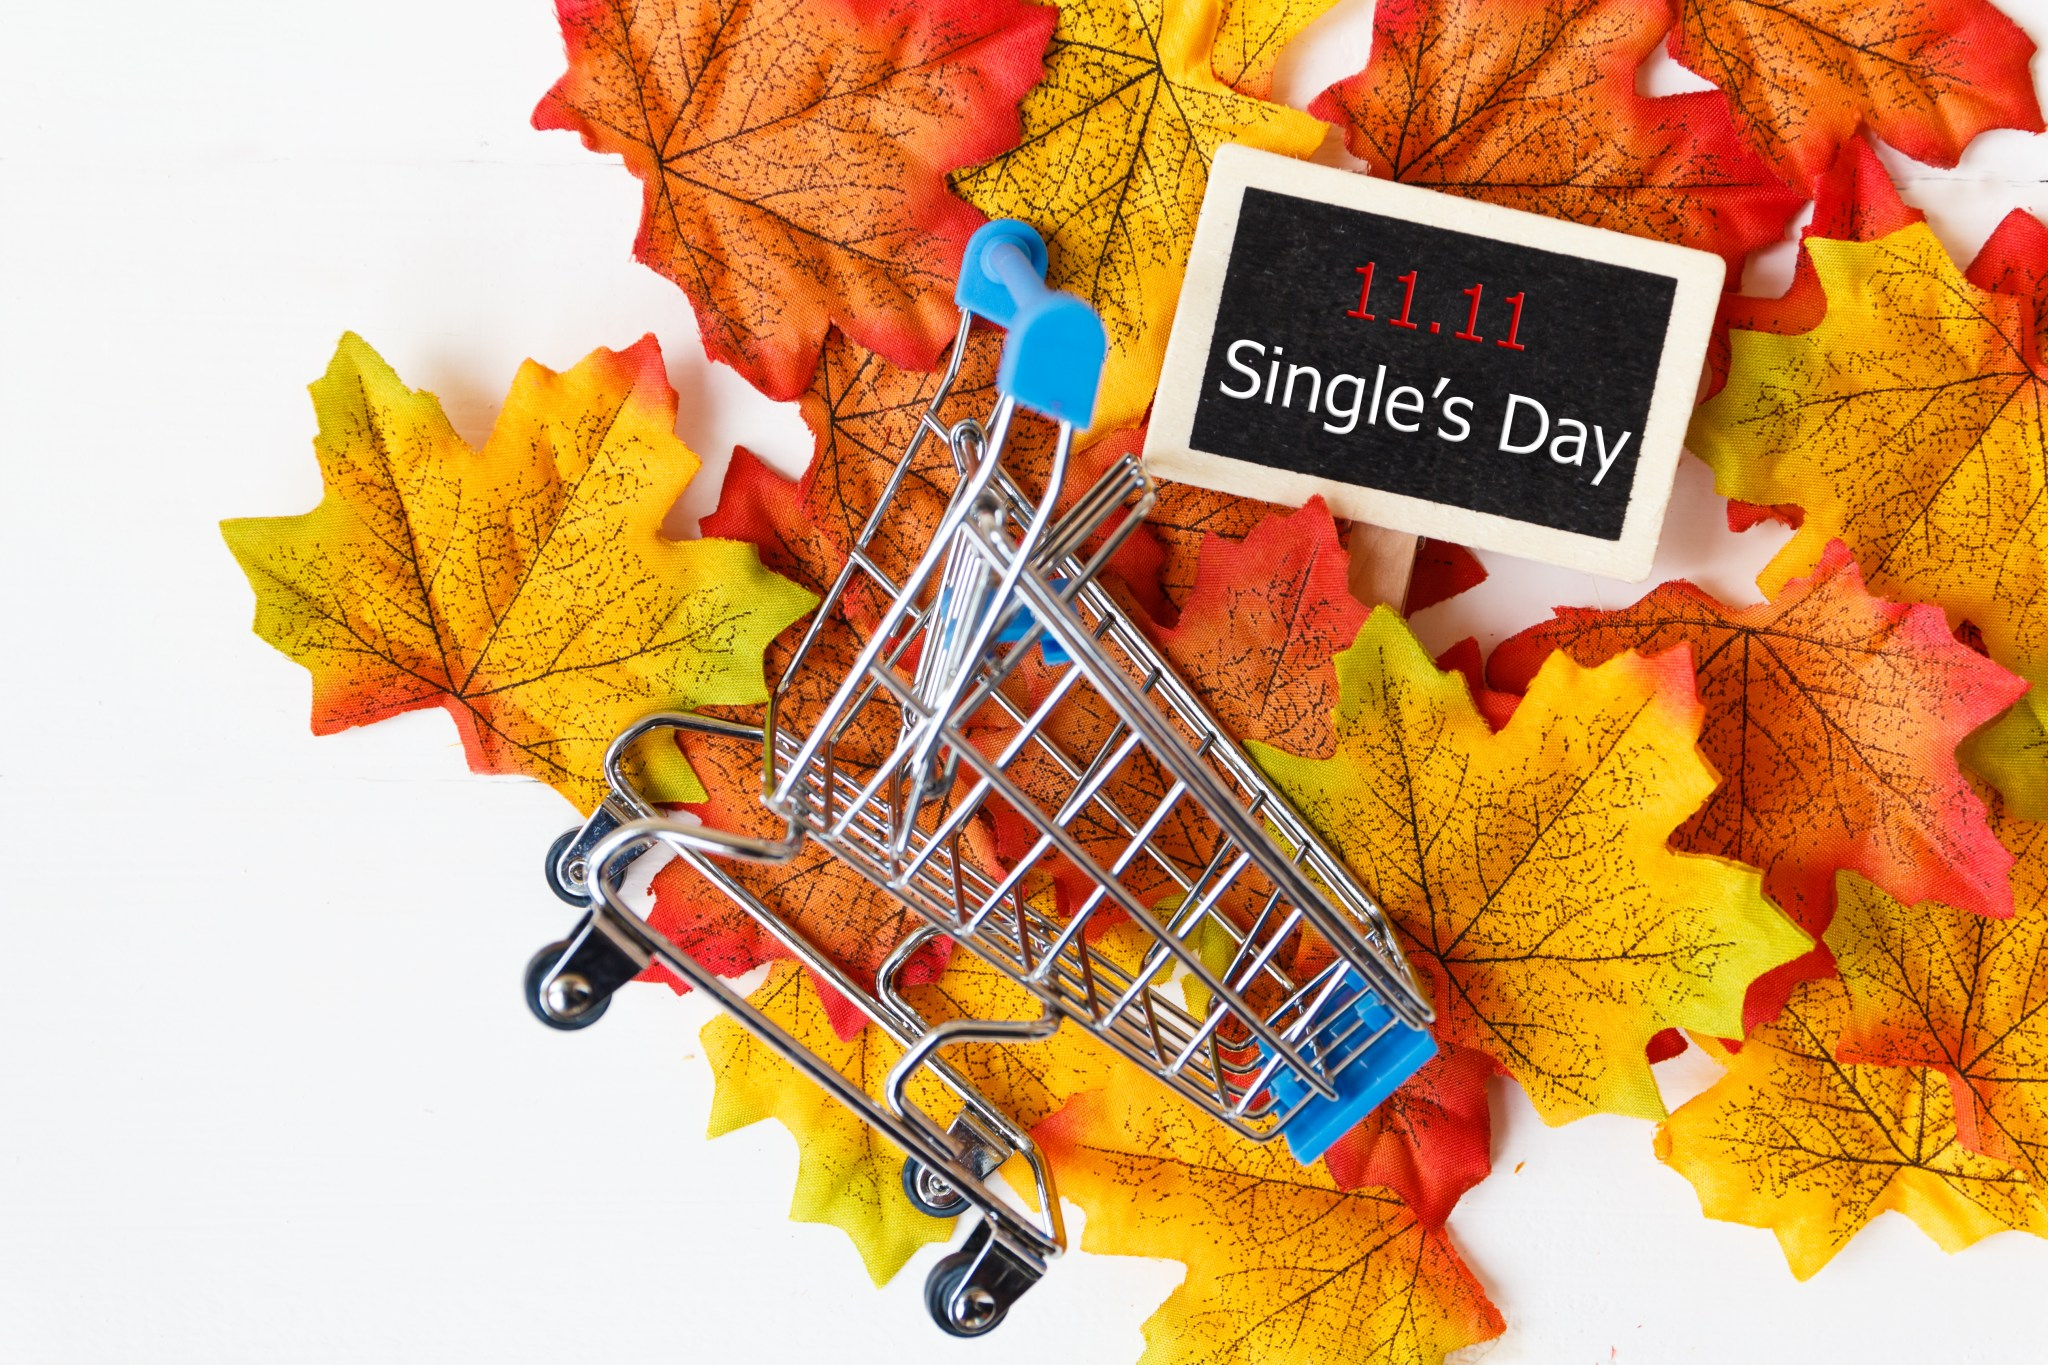 Singles Day - Last Mile Delivery Optimization